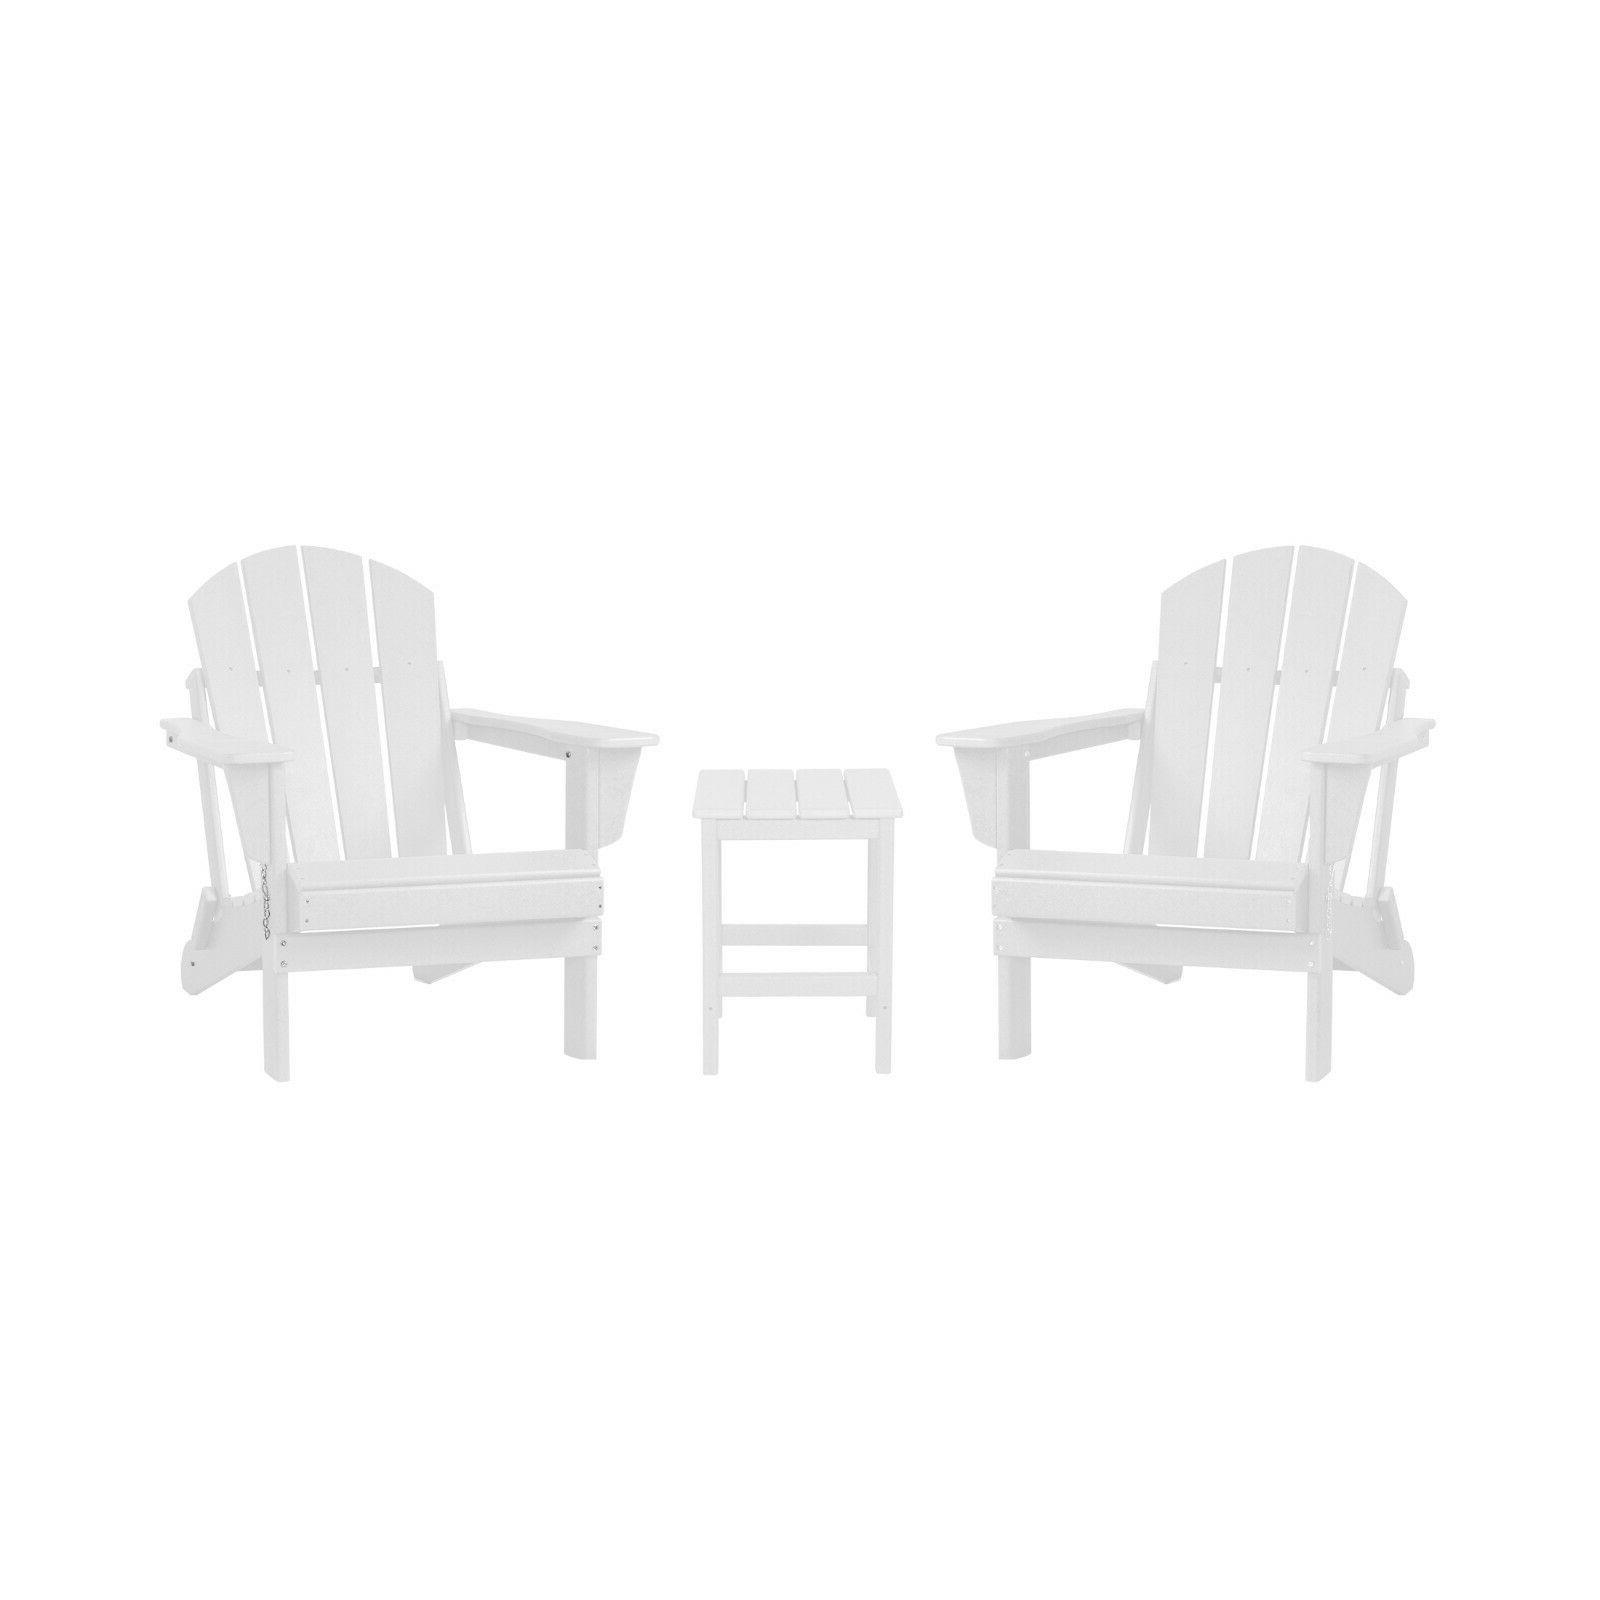 WestinTrends Outdoor Poly Chairs